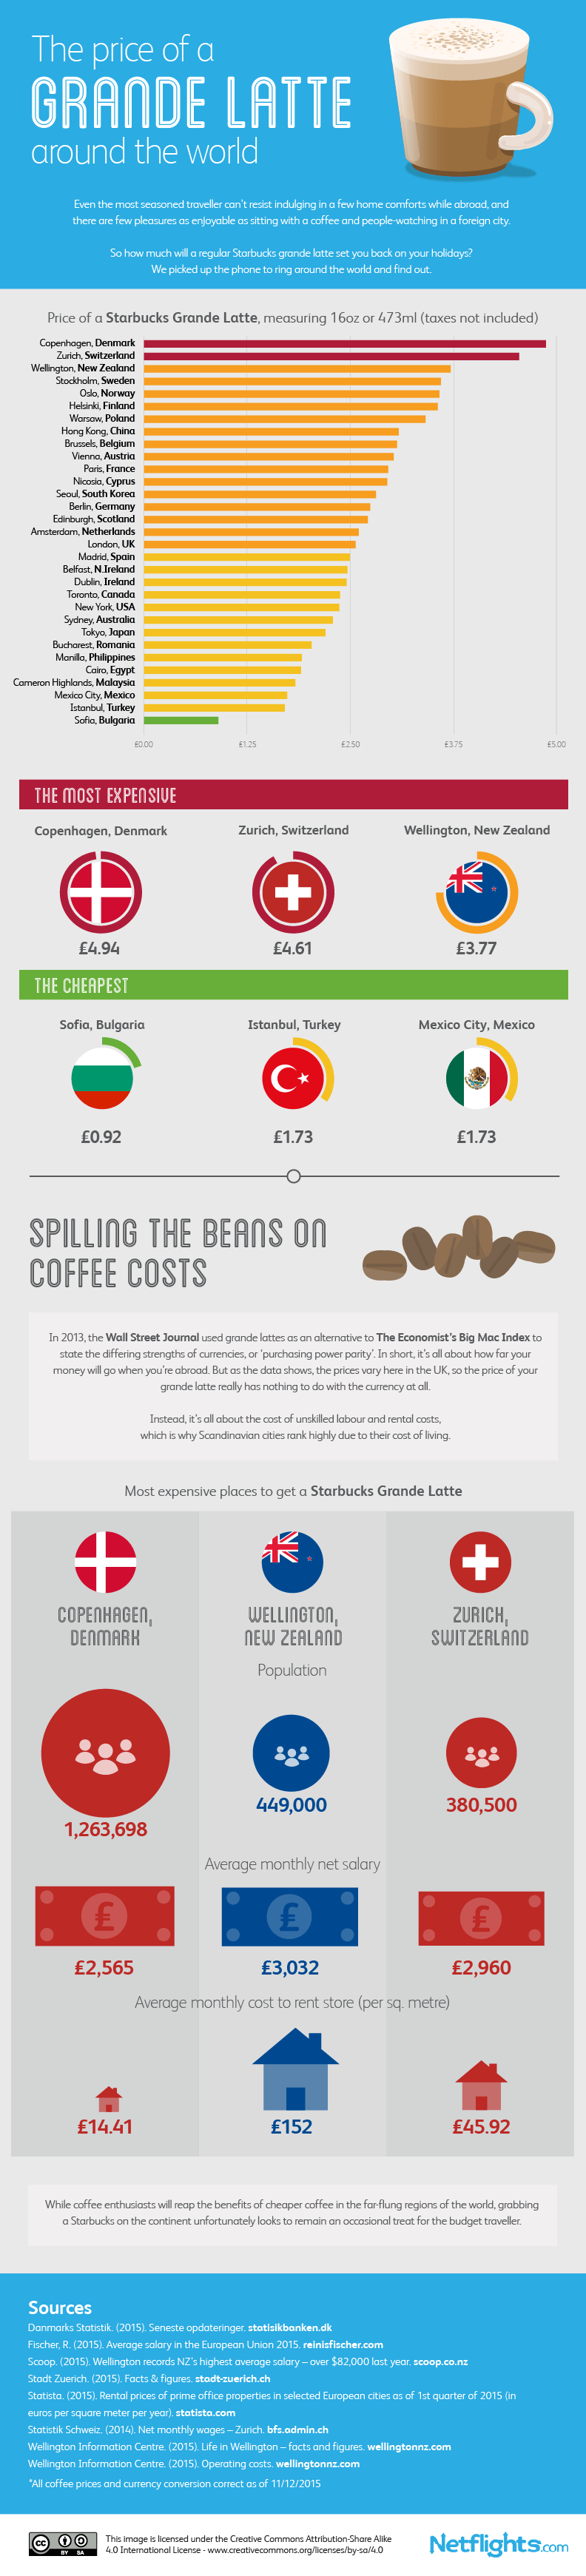 Price of a Grande Latte around the world